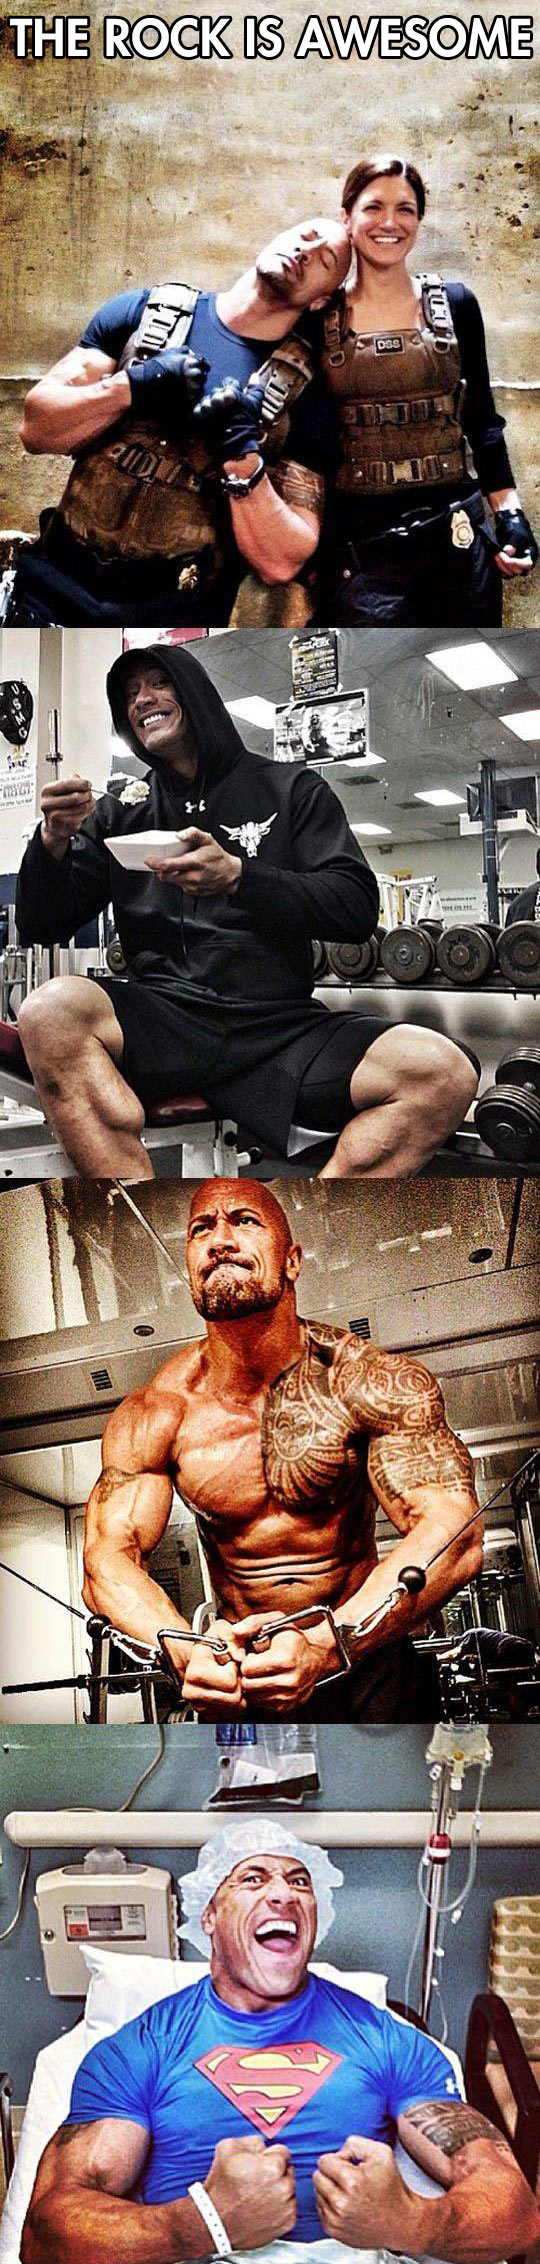 Some of the reasons Dwayne Johnson is an awesome guy...